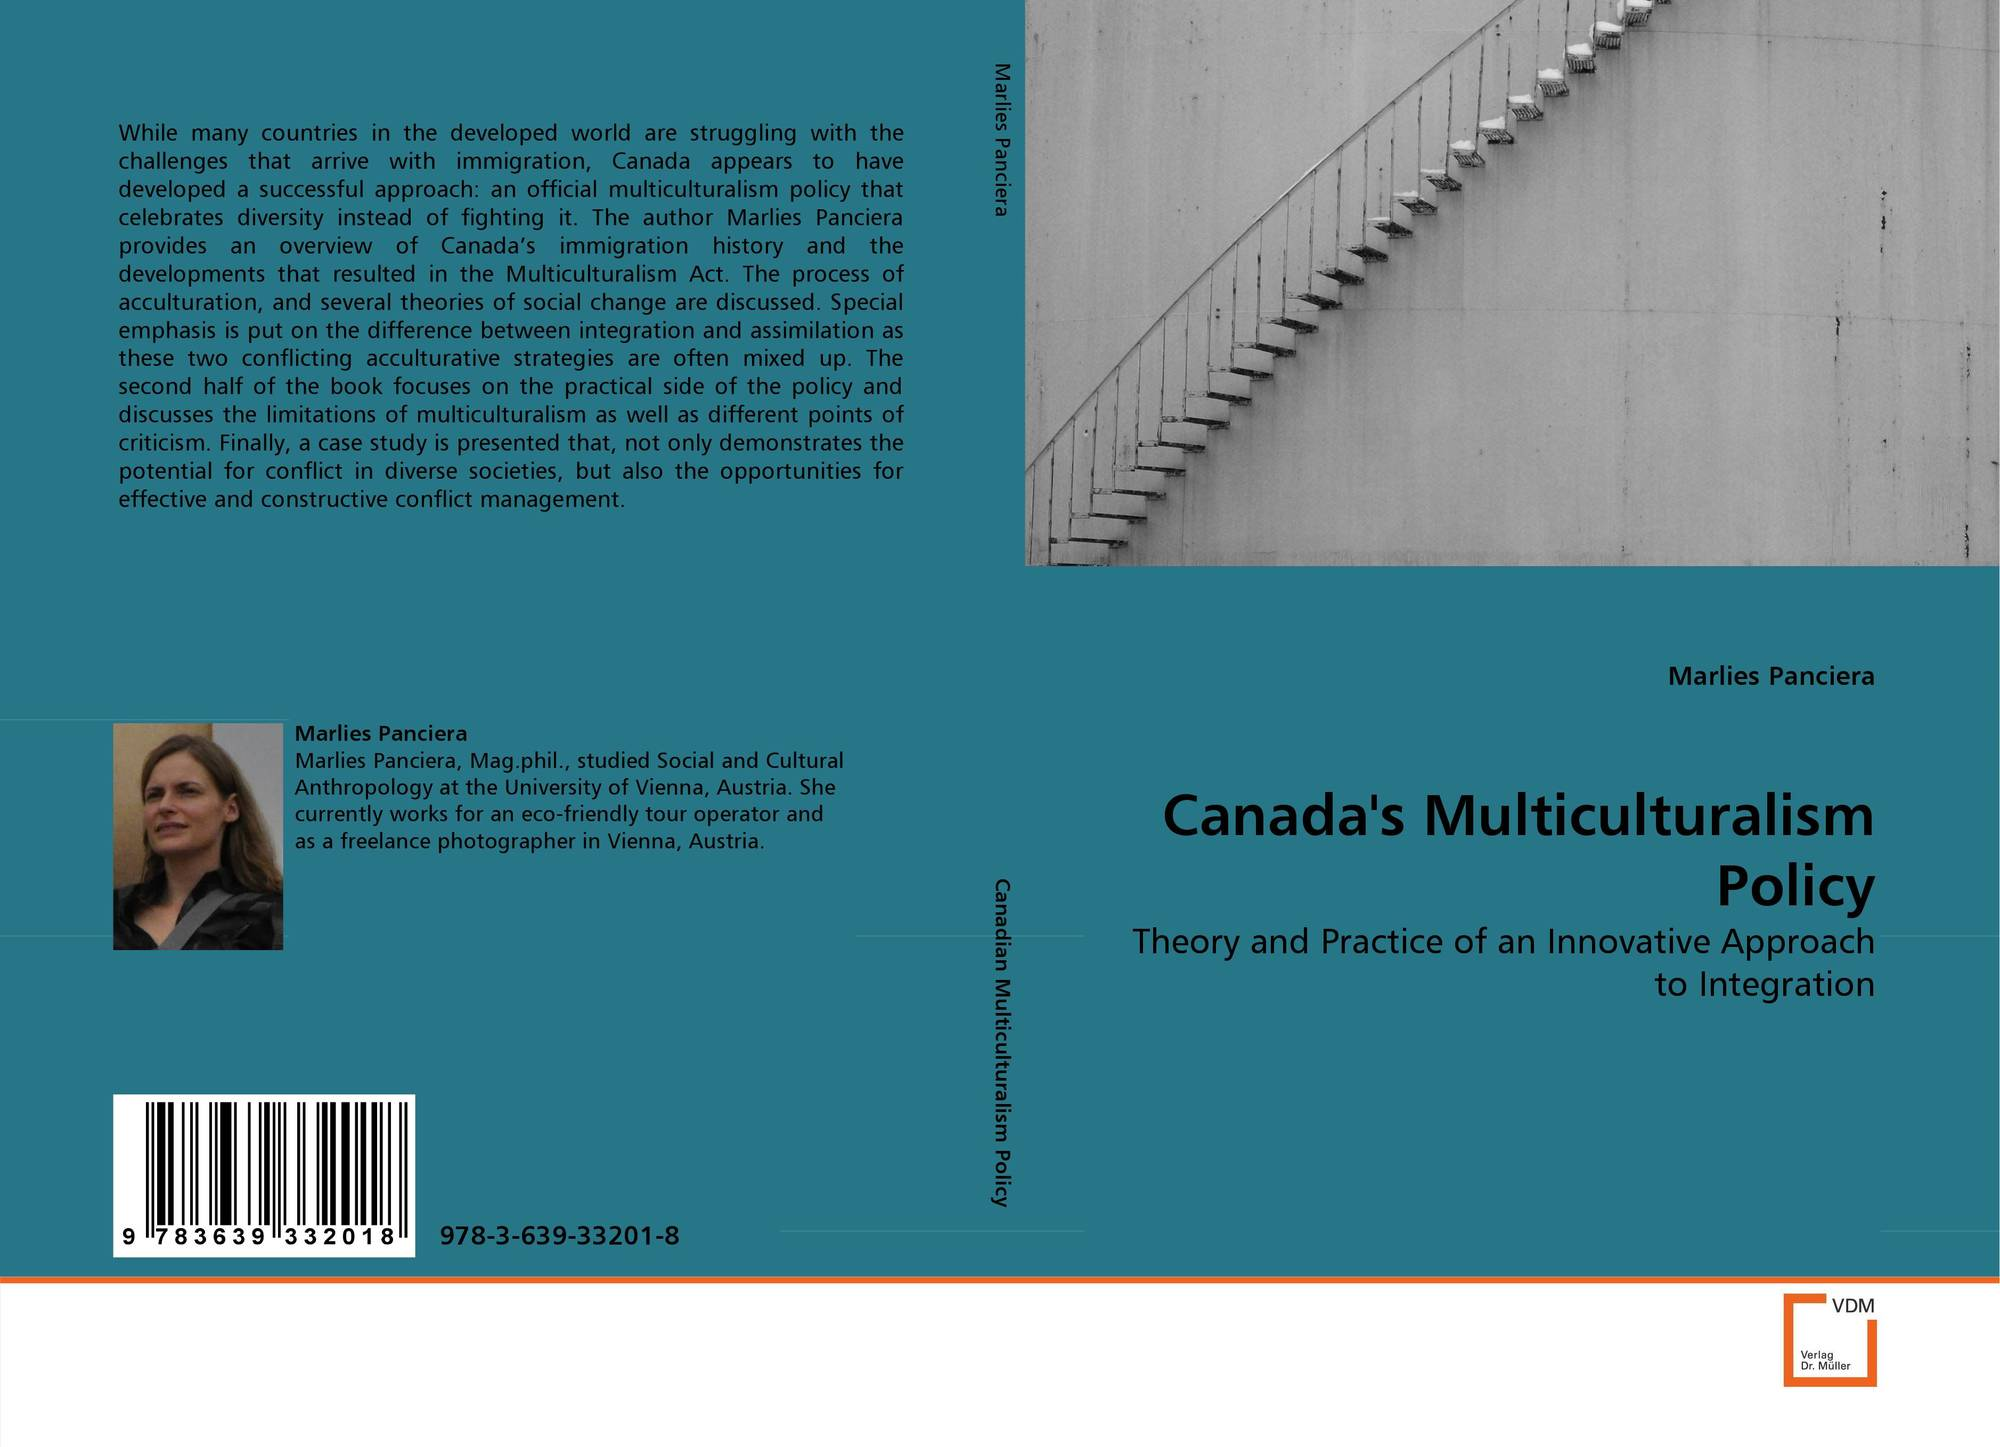 canada has a policy of multiculturalism Multiculturalism has been included in school as part of the multiculturalism policy, canada set aside $200 million for the development of programs in.